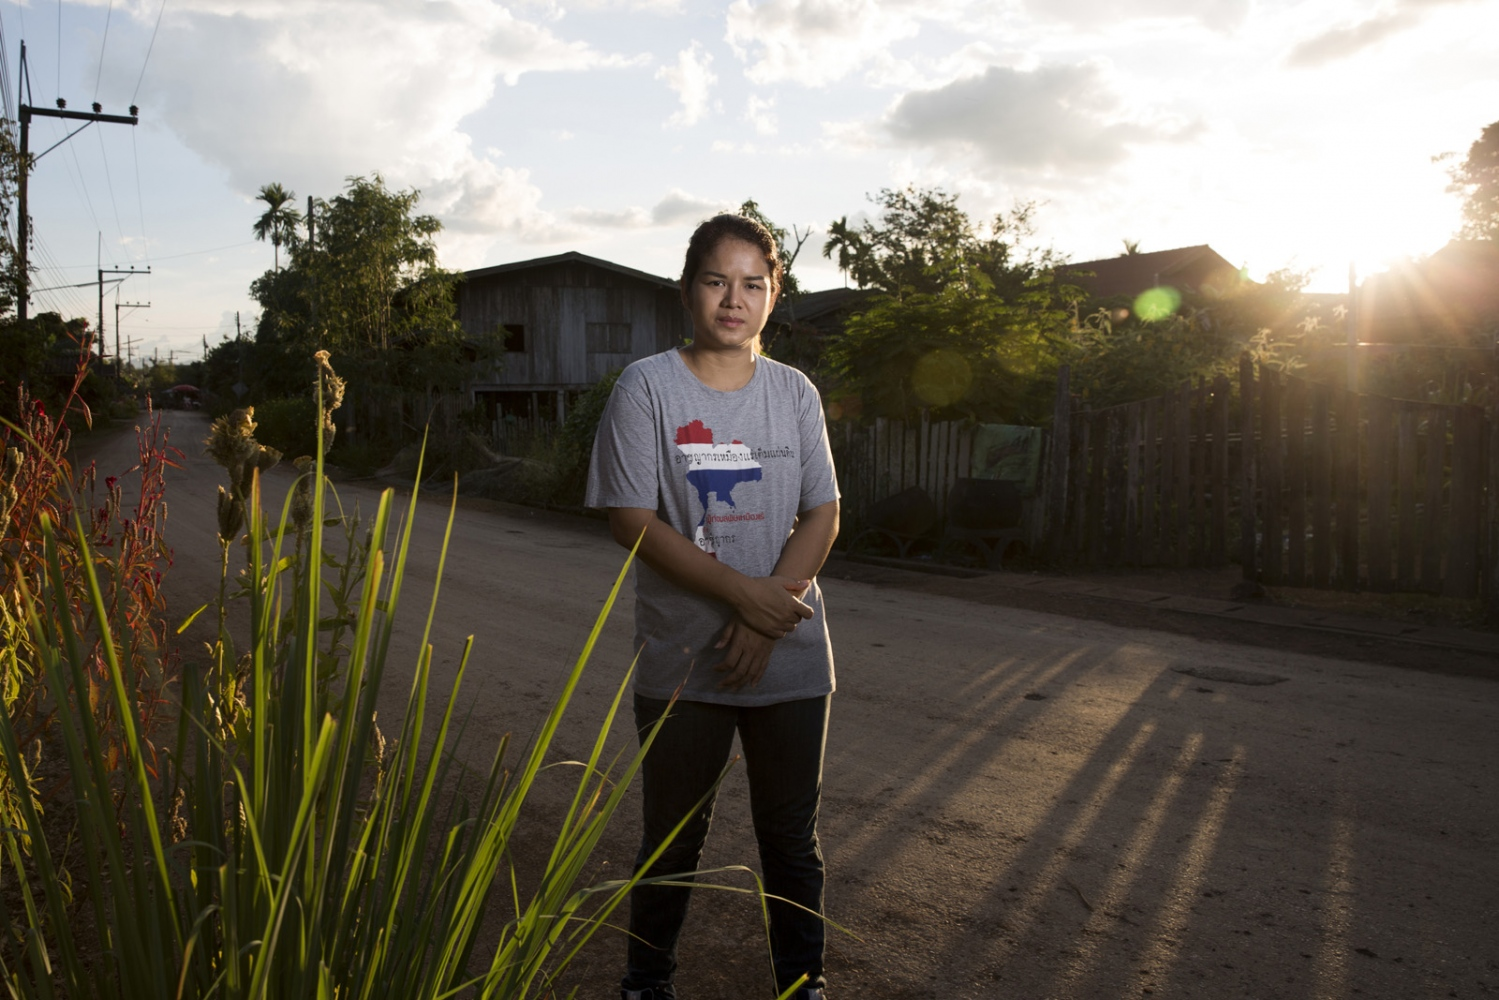 Chutima Chuenhuajai, a member of the Rak Ban Heang environmental group, on the main street of the village of Ban Heng in Lampang Province where the threat of an open-pit coal mine looms. Lampang, Thailand